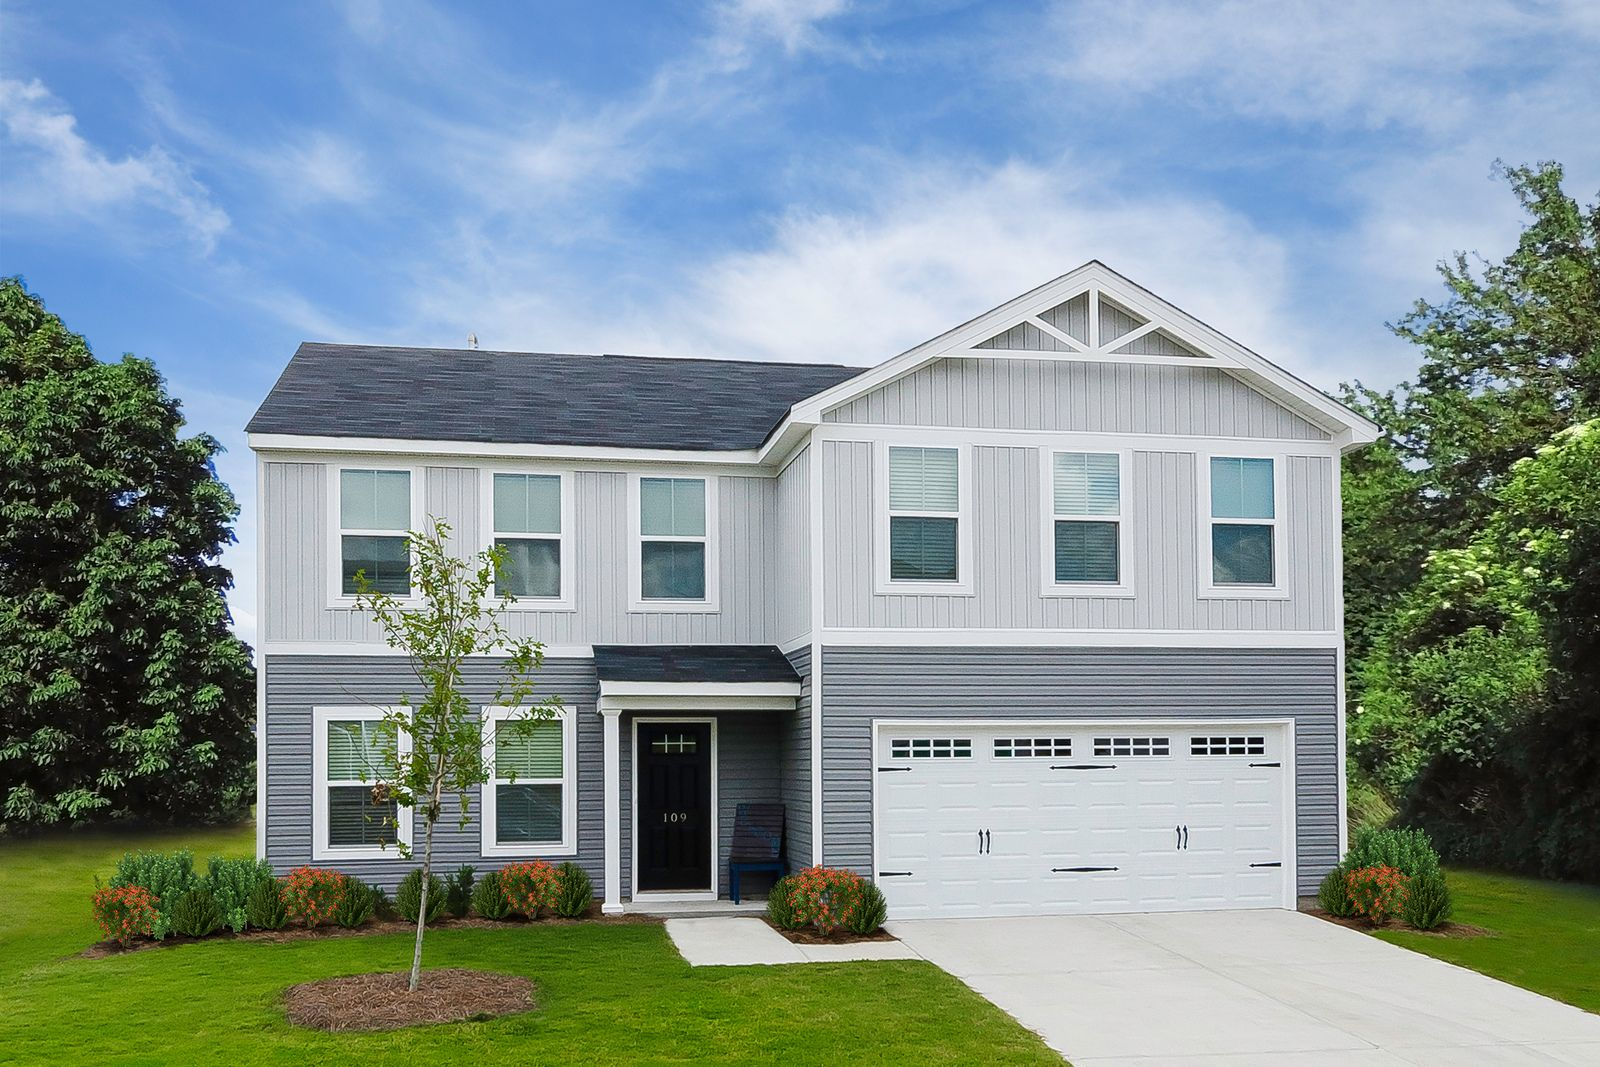 Own a brand new home for less than rent with ALL appliances included!